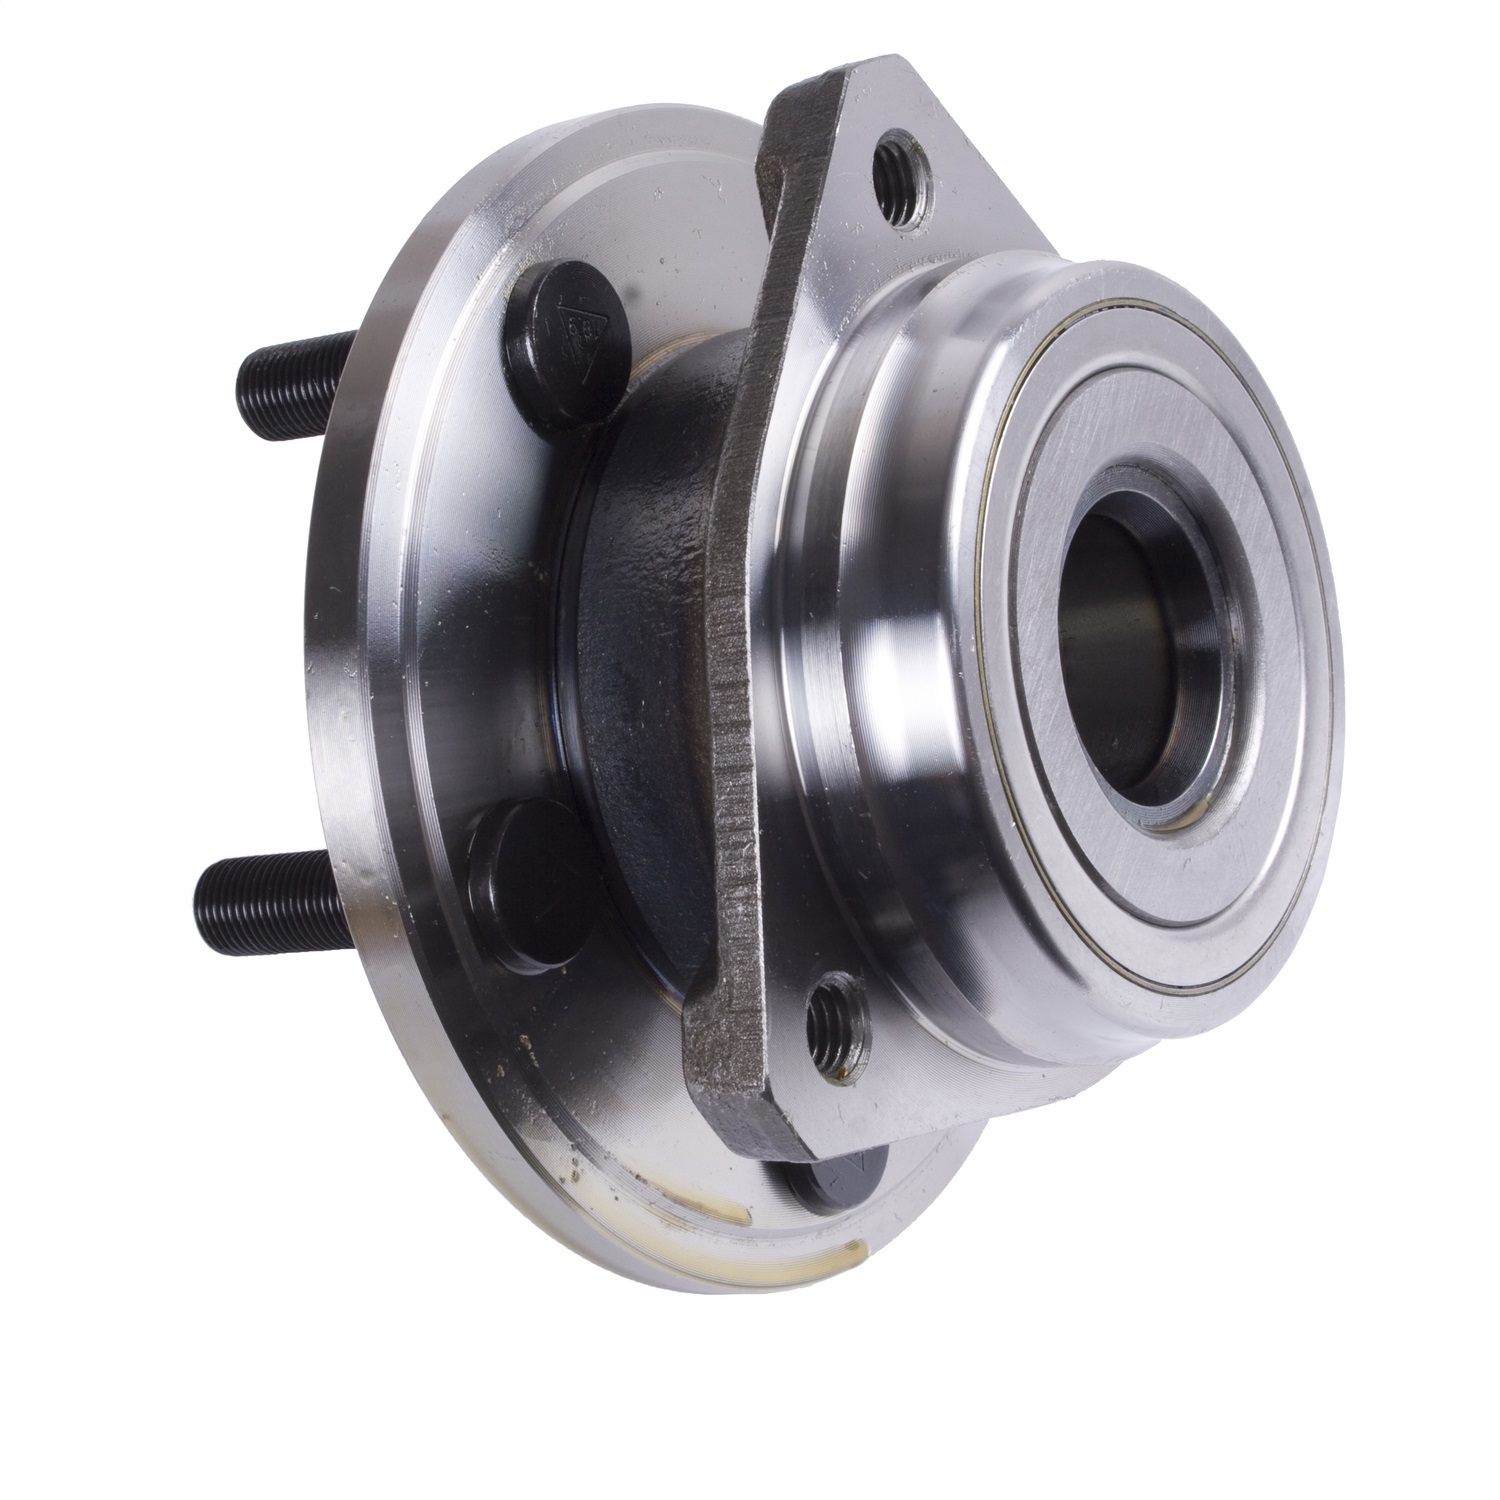 Alloy USA 35400 Alloy USA Axle Hub Assembly Fits Wrangler (LJ) Wrangler (TJ)